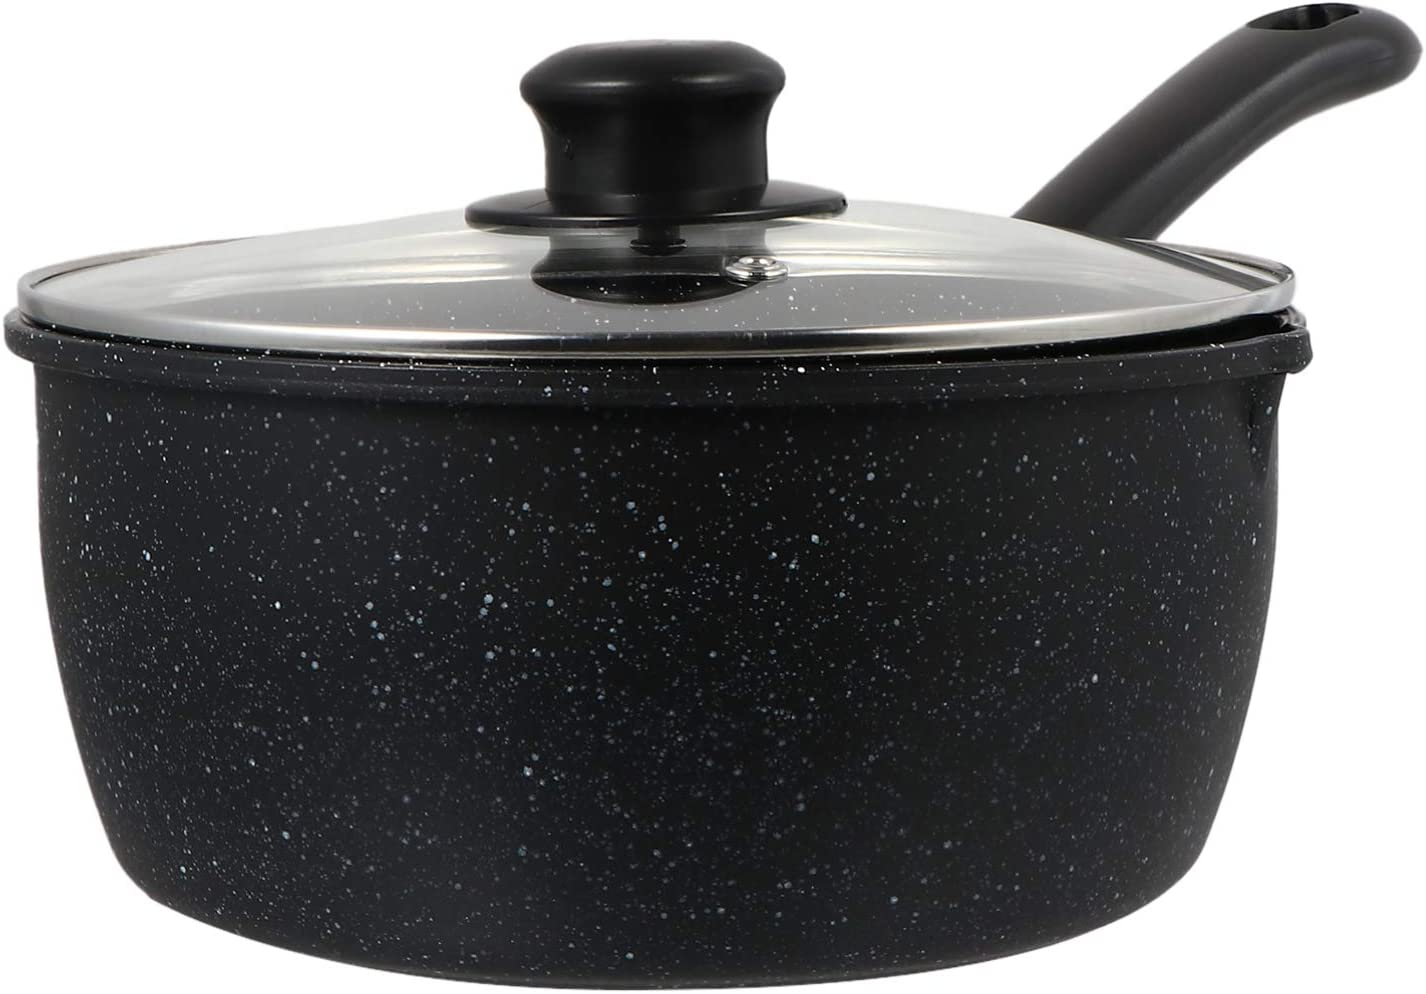 HEMOTON Nonstick Saucepan with Lid Iron Maifan Pot Sto Soup Milk Limited time for Manufacturer regenerated product free shipping